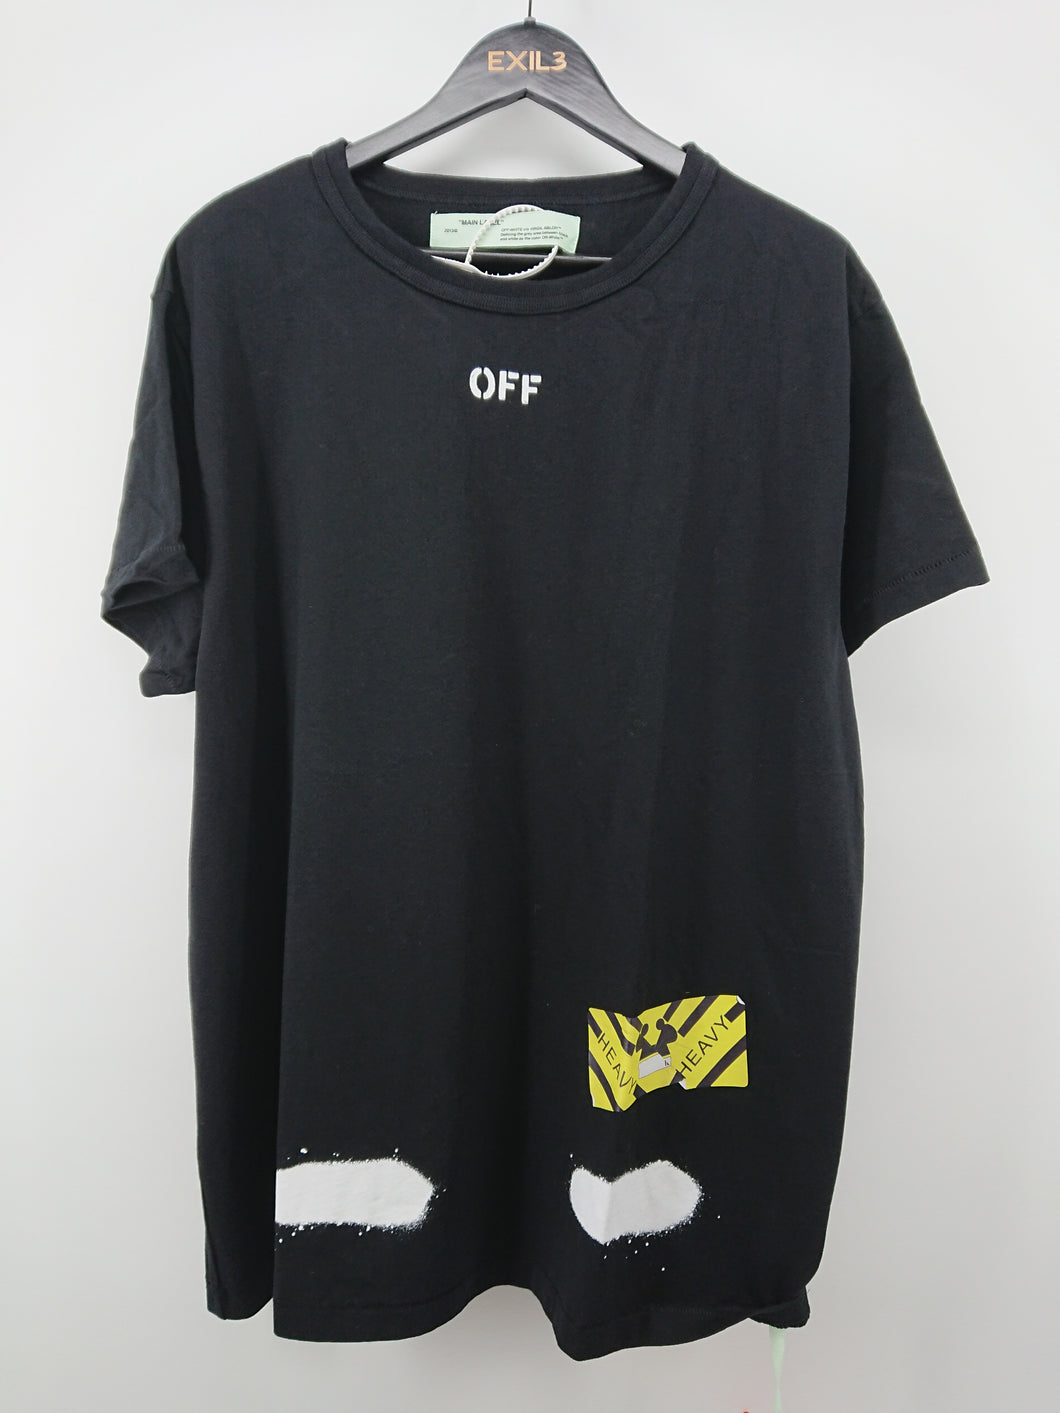 Off White Diagonal Spray Tee